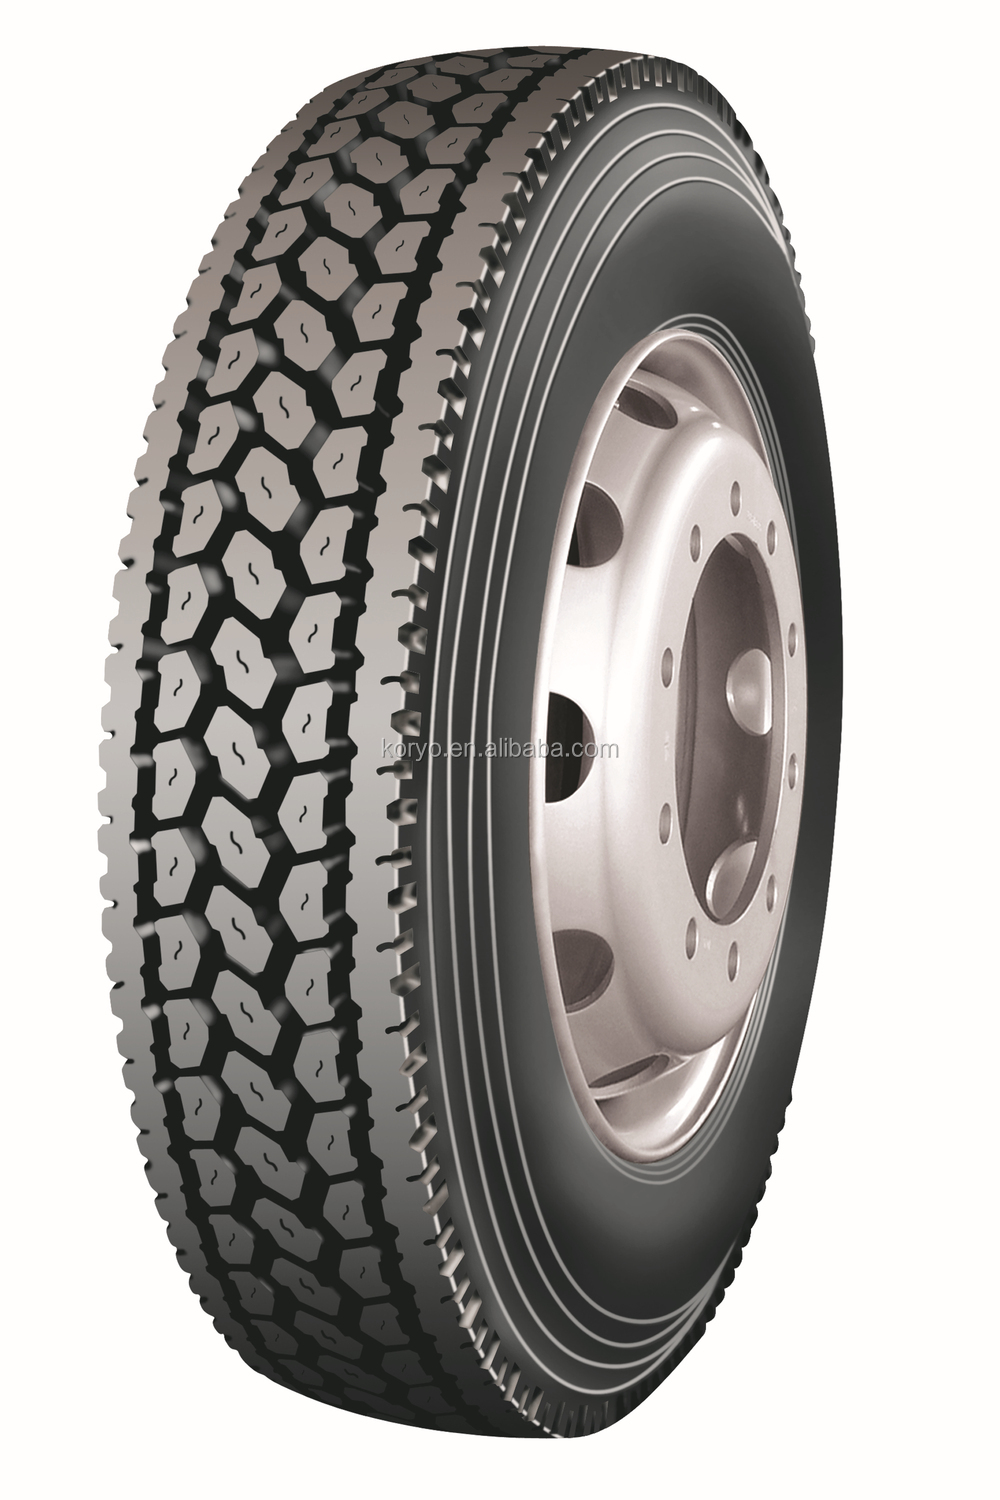 LONGMARCH Truck <strong>Tire</strong> 11R24.5-16PR LM516